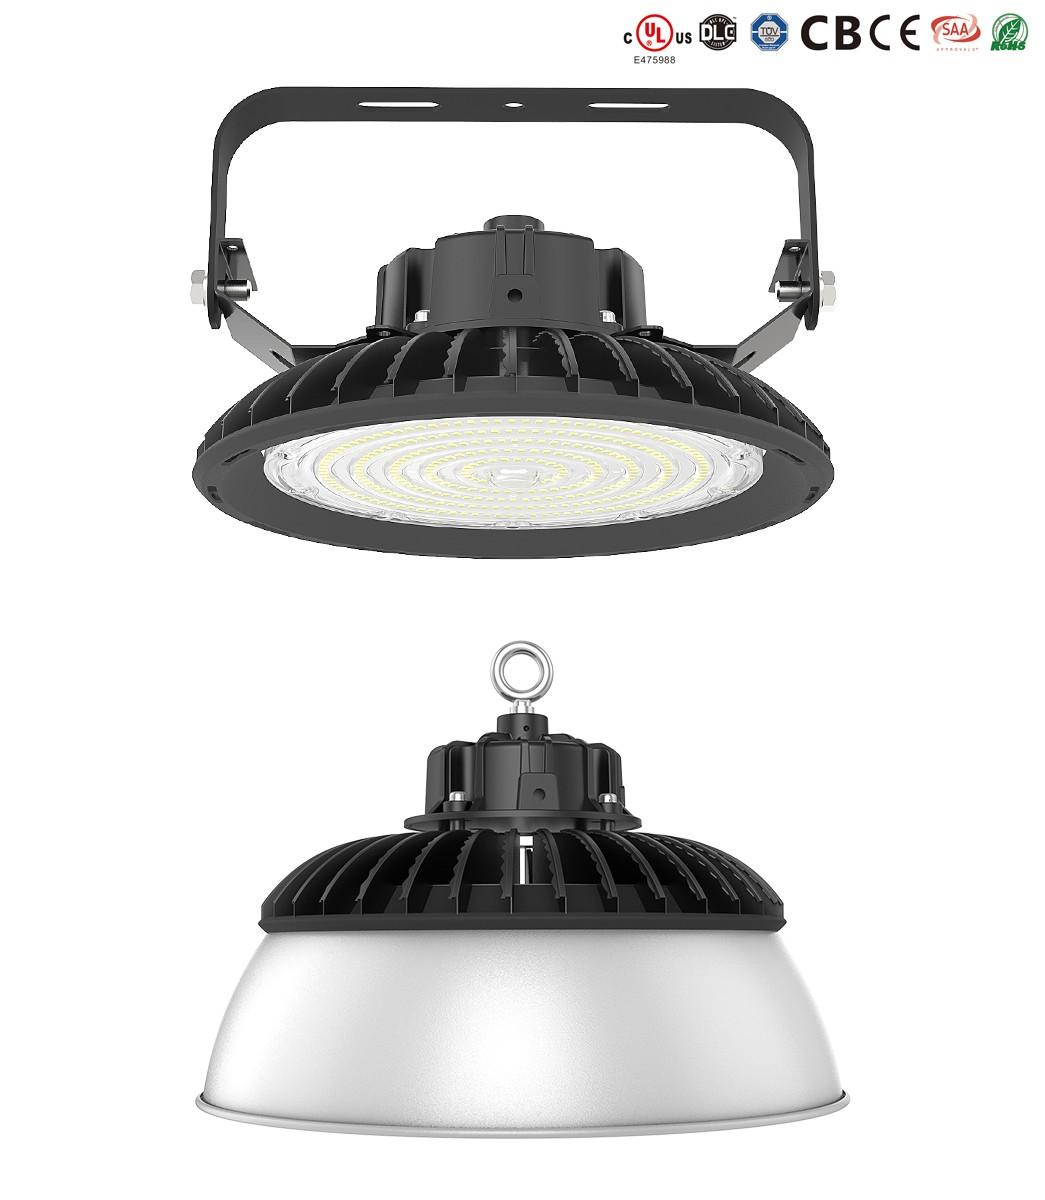 with higher efficiency 400w low bay lights shading company for showrooms-1